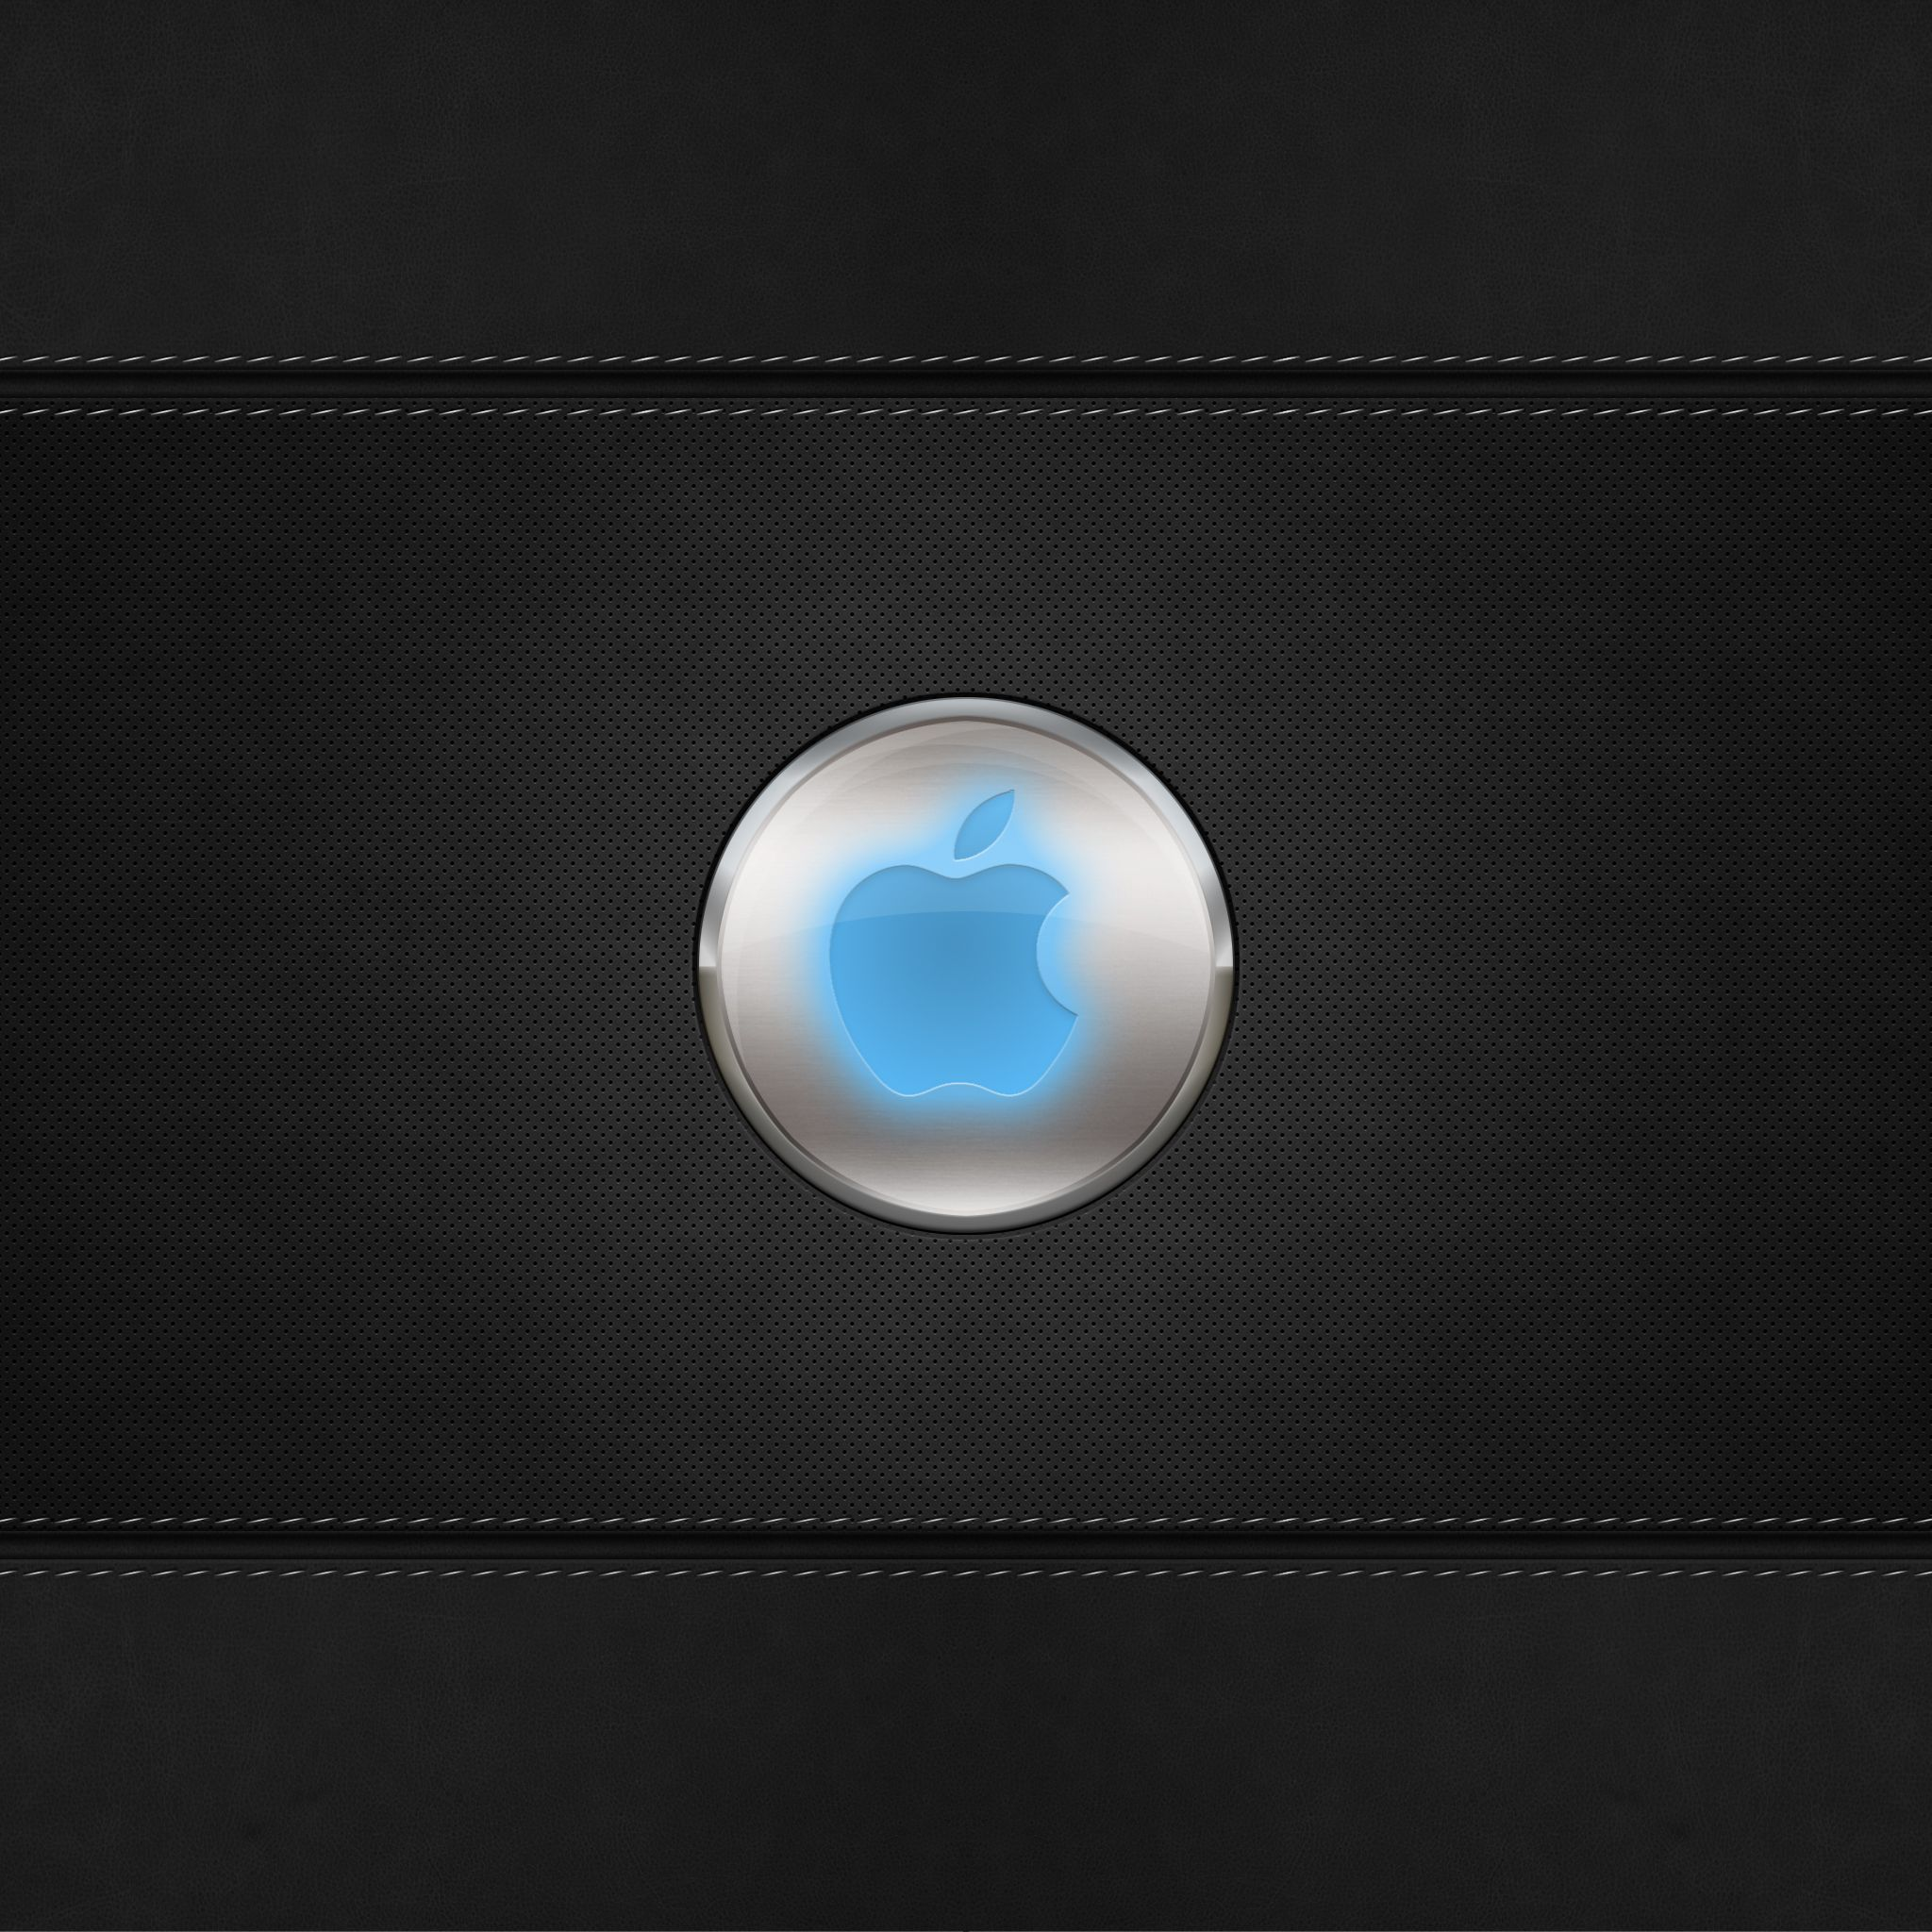 Wallpaper download for iphone - Blue Glow Apple Logo Ipad Air Wallpaper Download Iphone